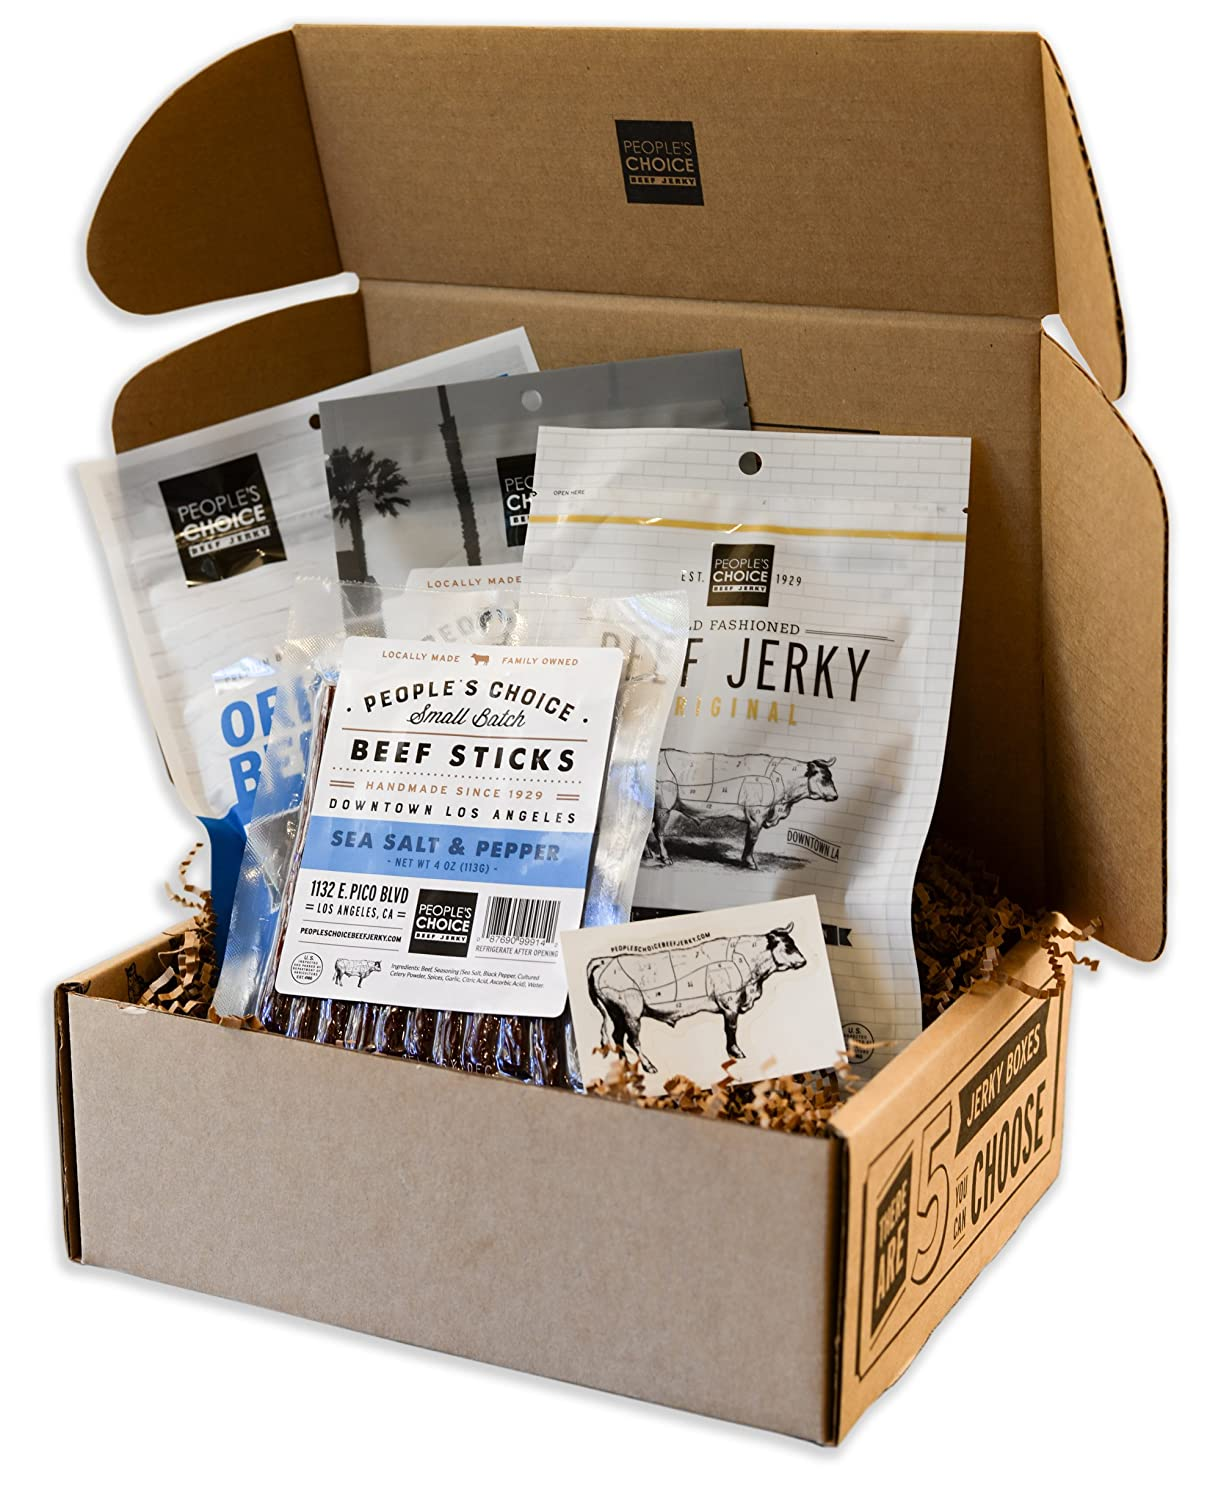 People's Choice Beef Jerky - Jerky Box - Simple & Savory - Meat Snack Sampler Gift Basket